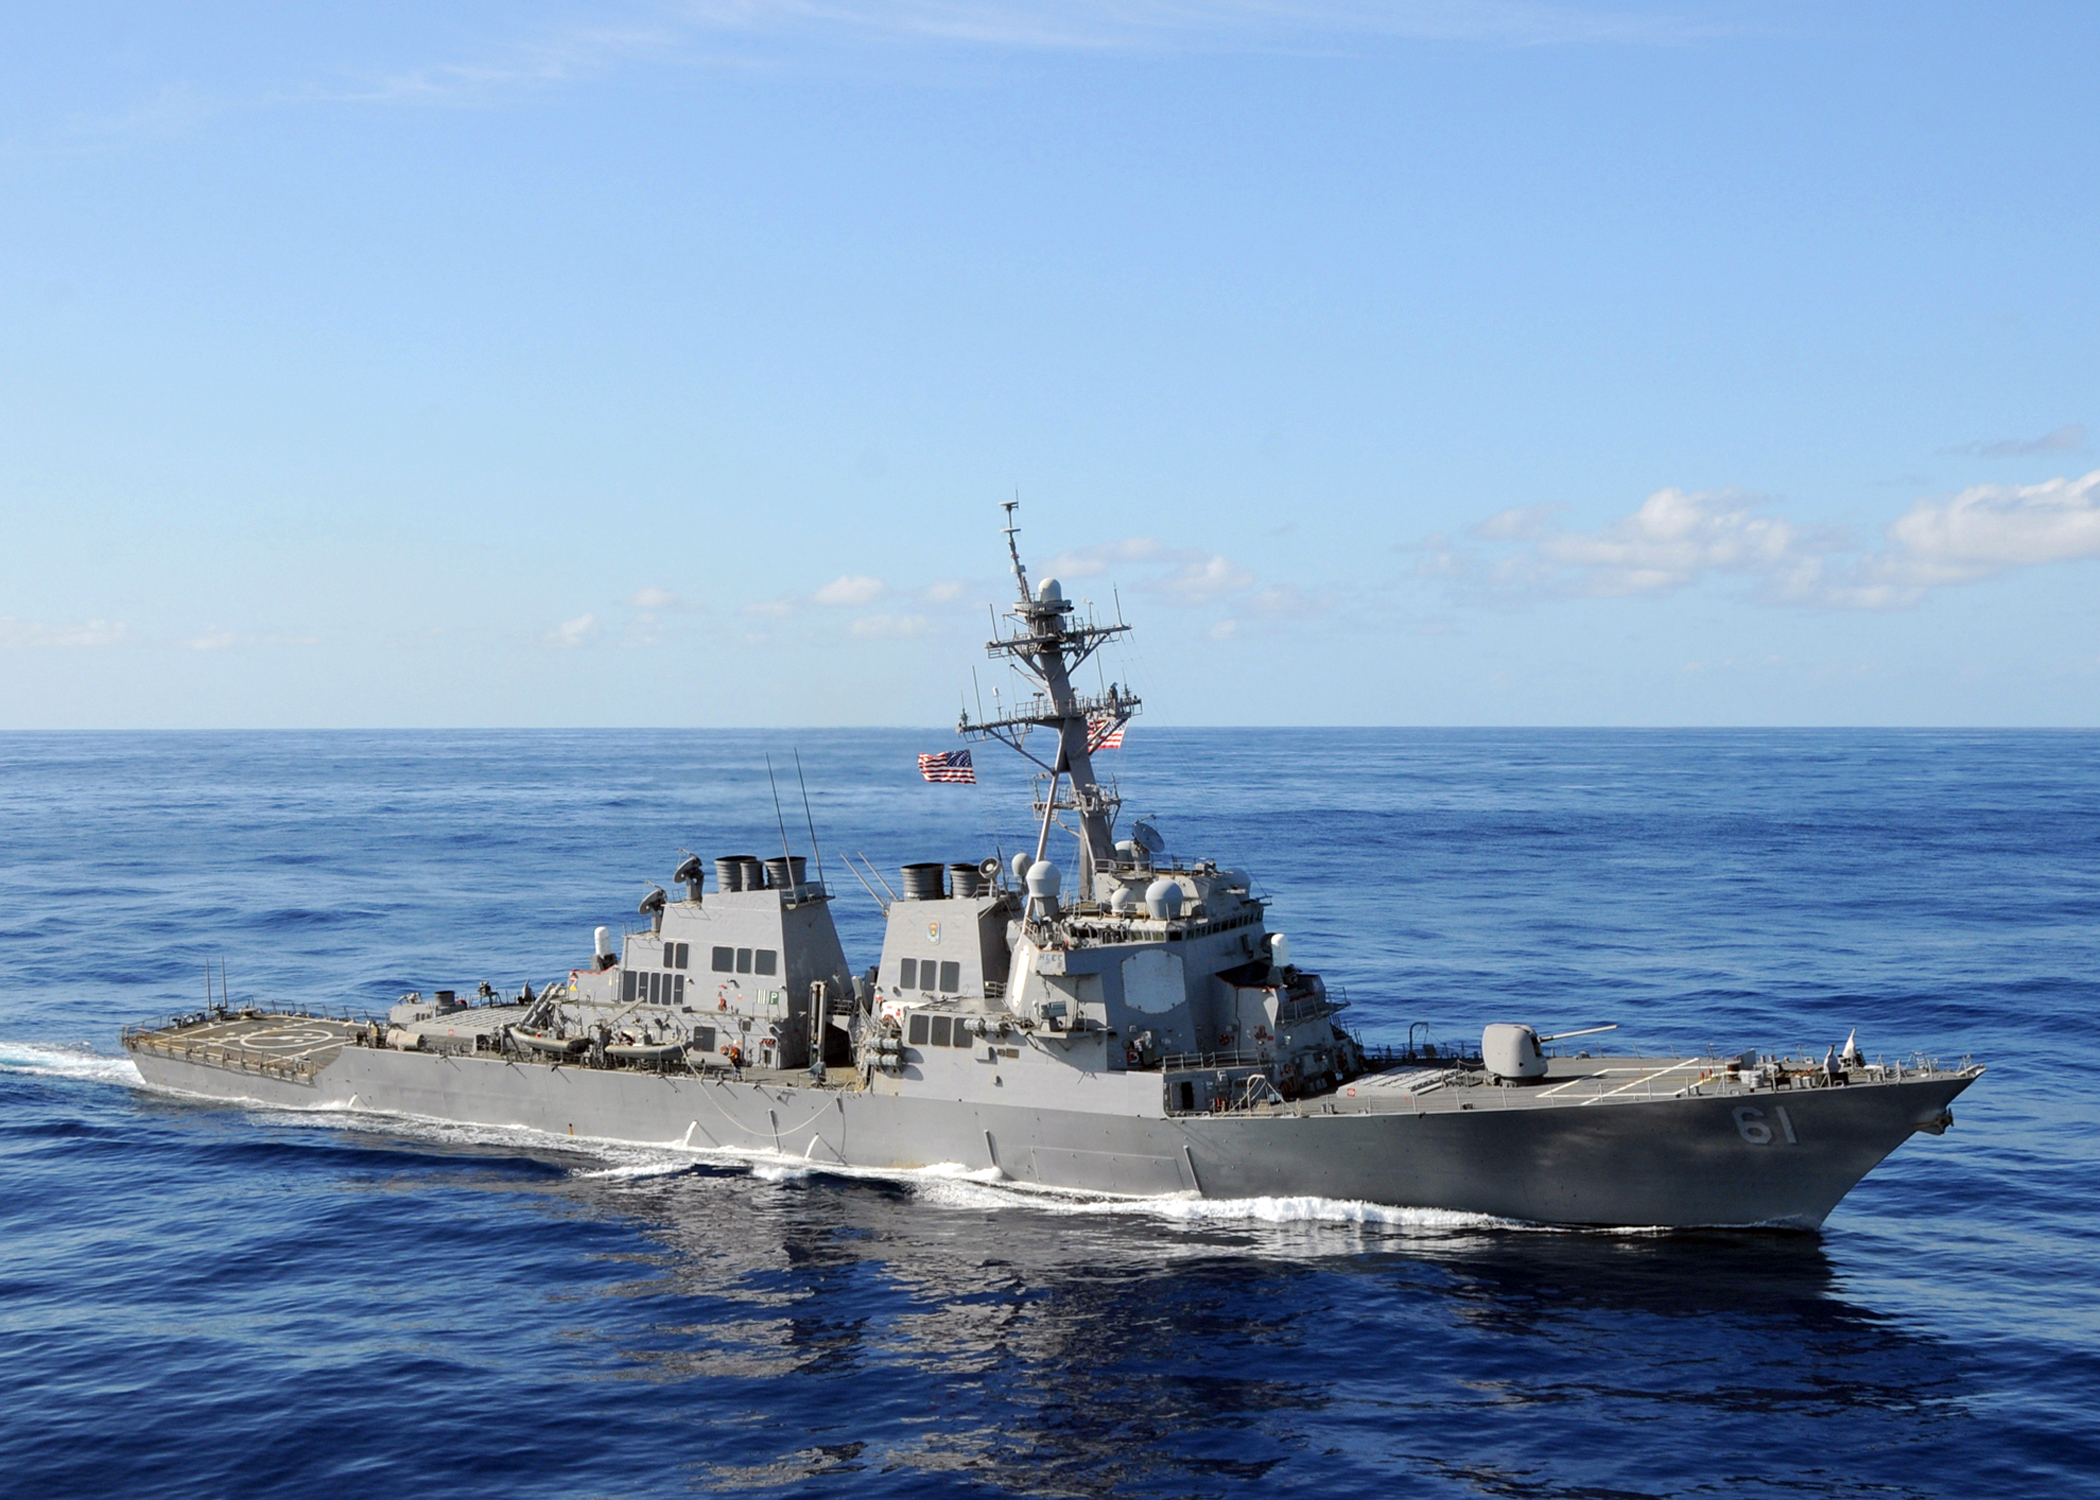 http://upload.wikimedia.org/wikipedia/commons/7/78/US_Navy_080906-N-1082Z-142_The_guided-missile_destroyer_USS_Ramage_(DDG_61)_transits_the_Atlantic_Ocean.jpg